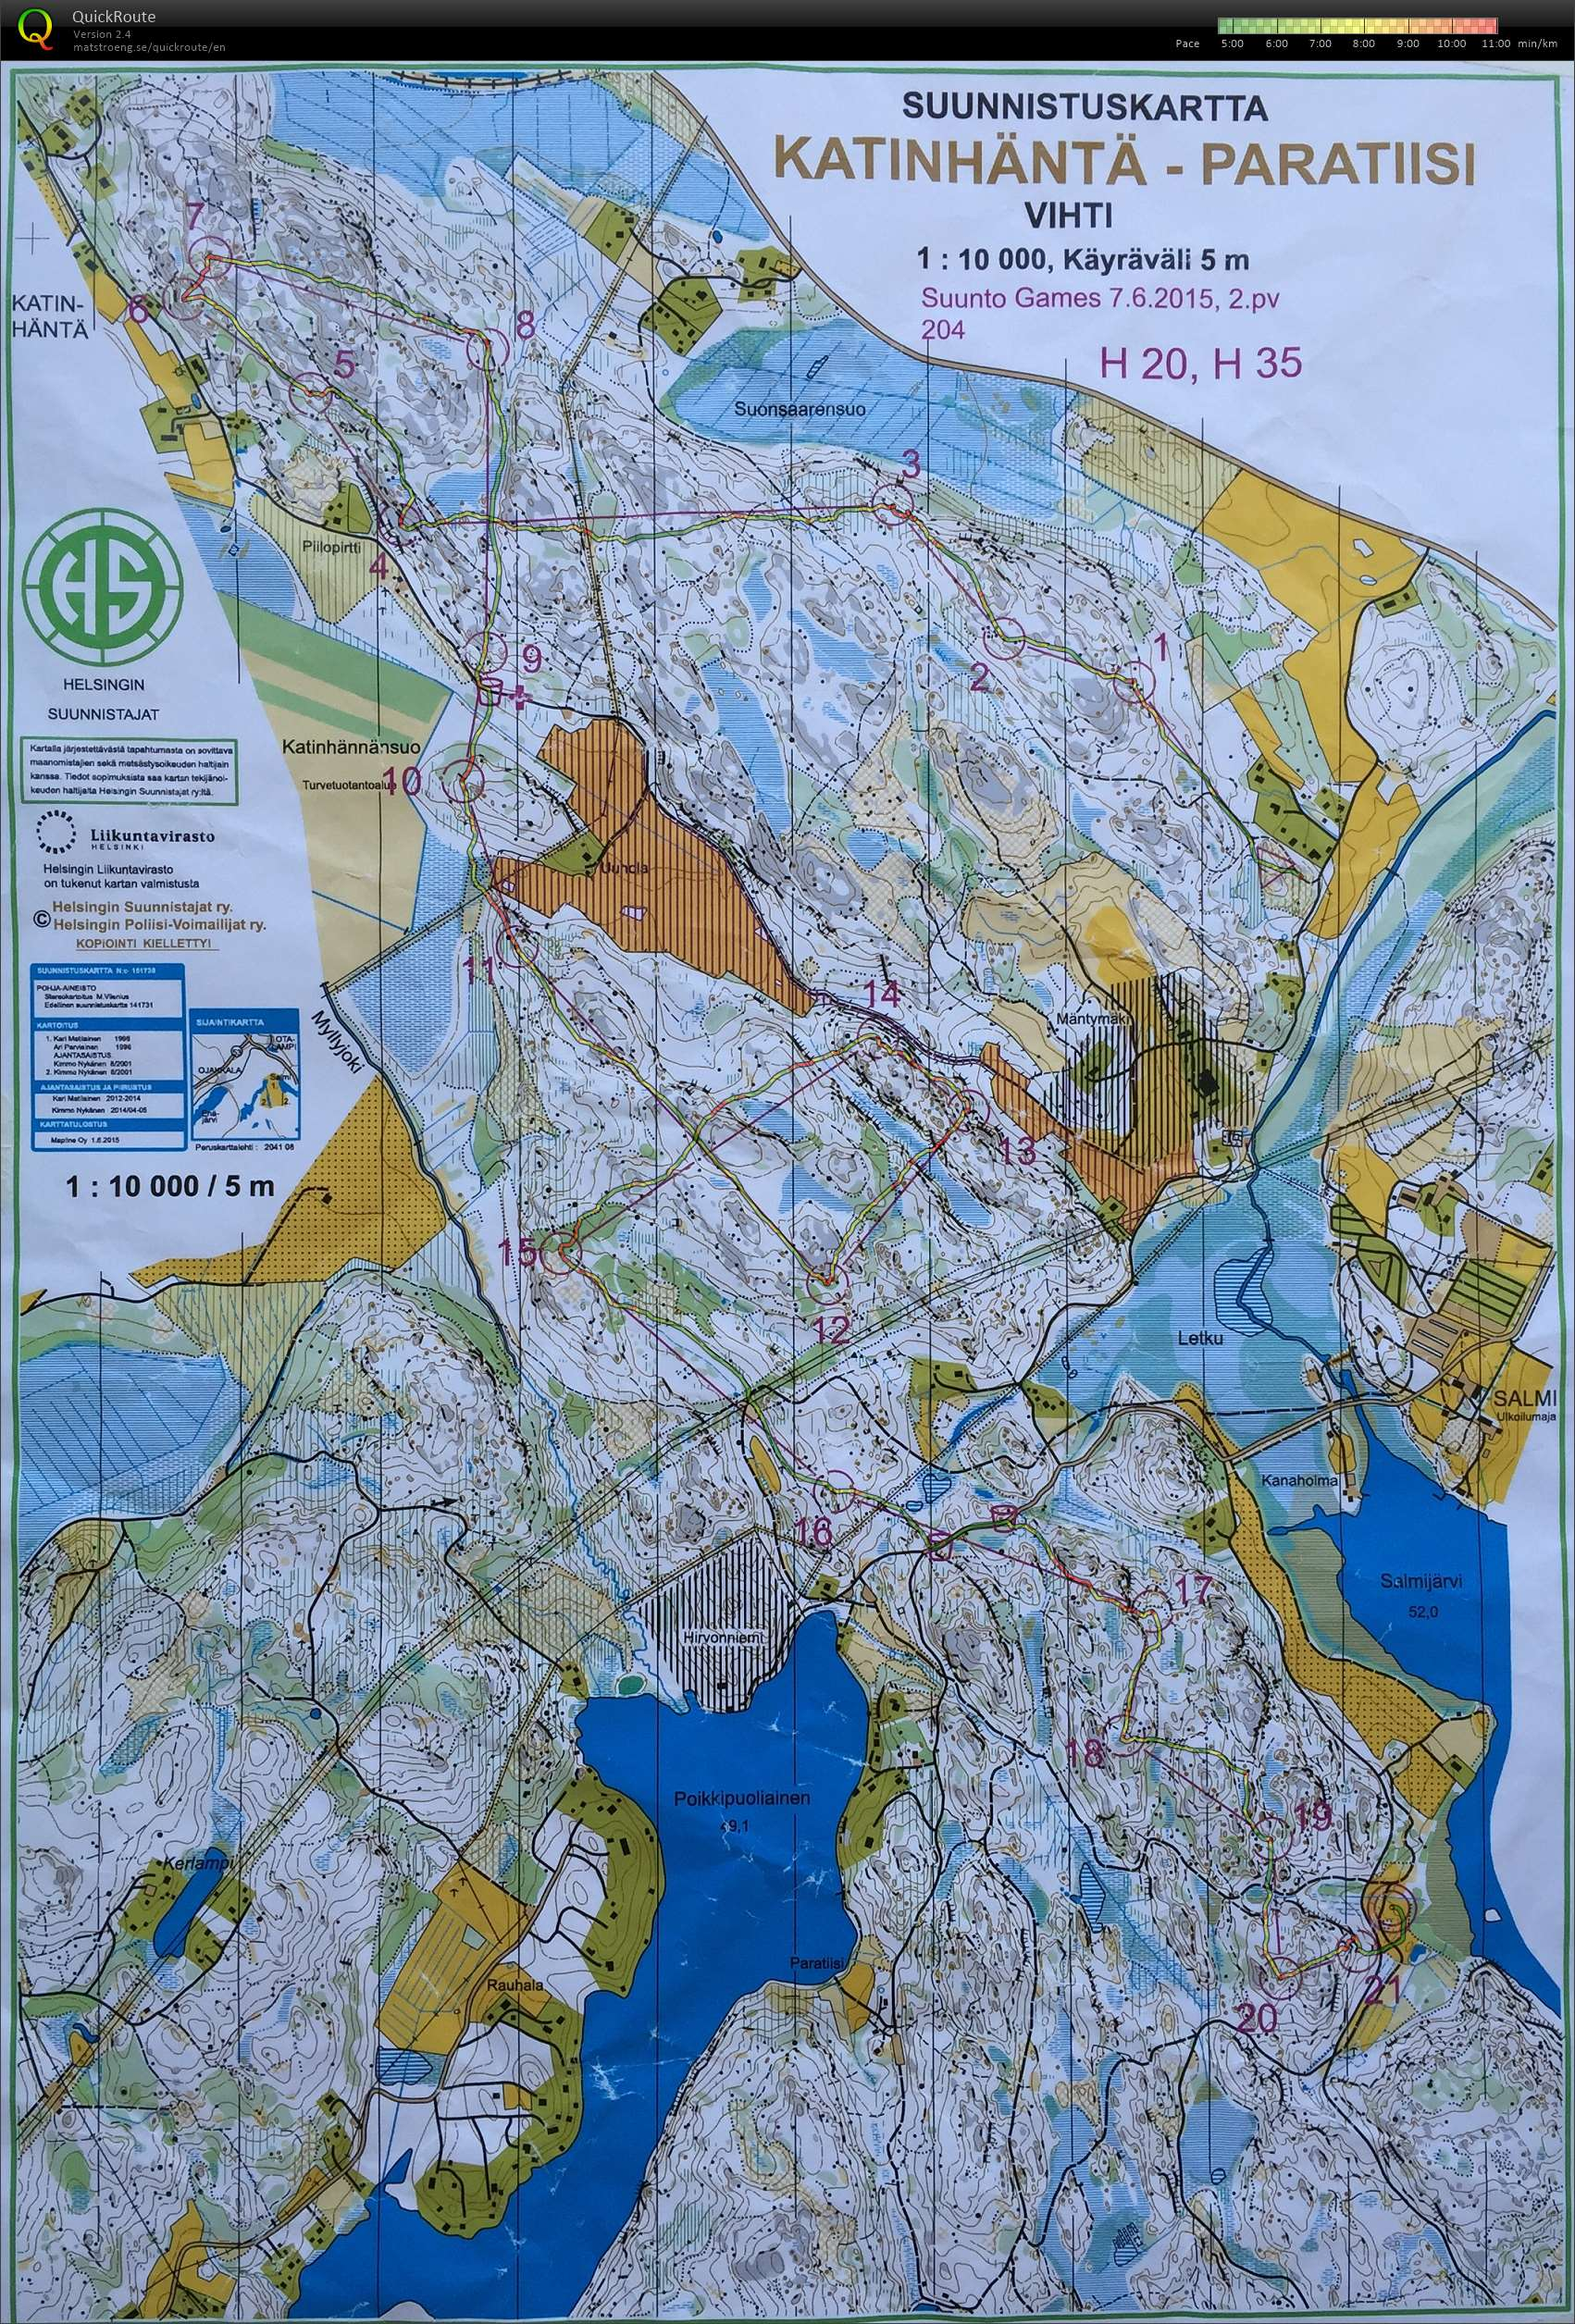 Suunto Games 2015 Day2 (07/06/2015)